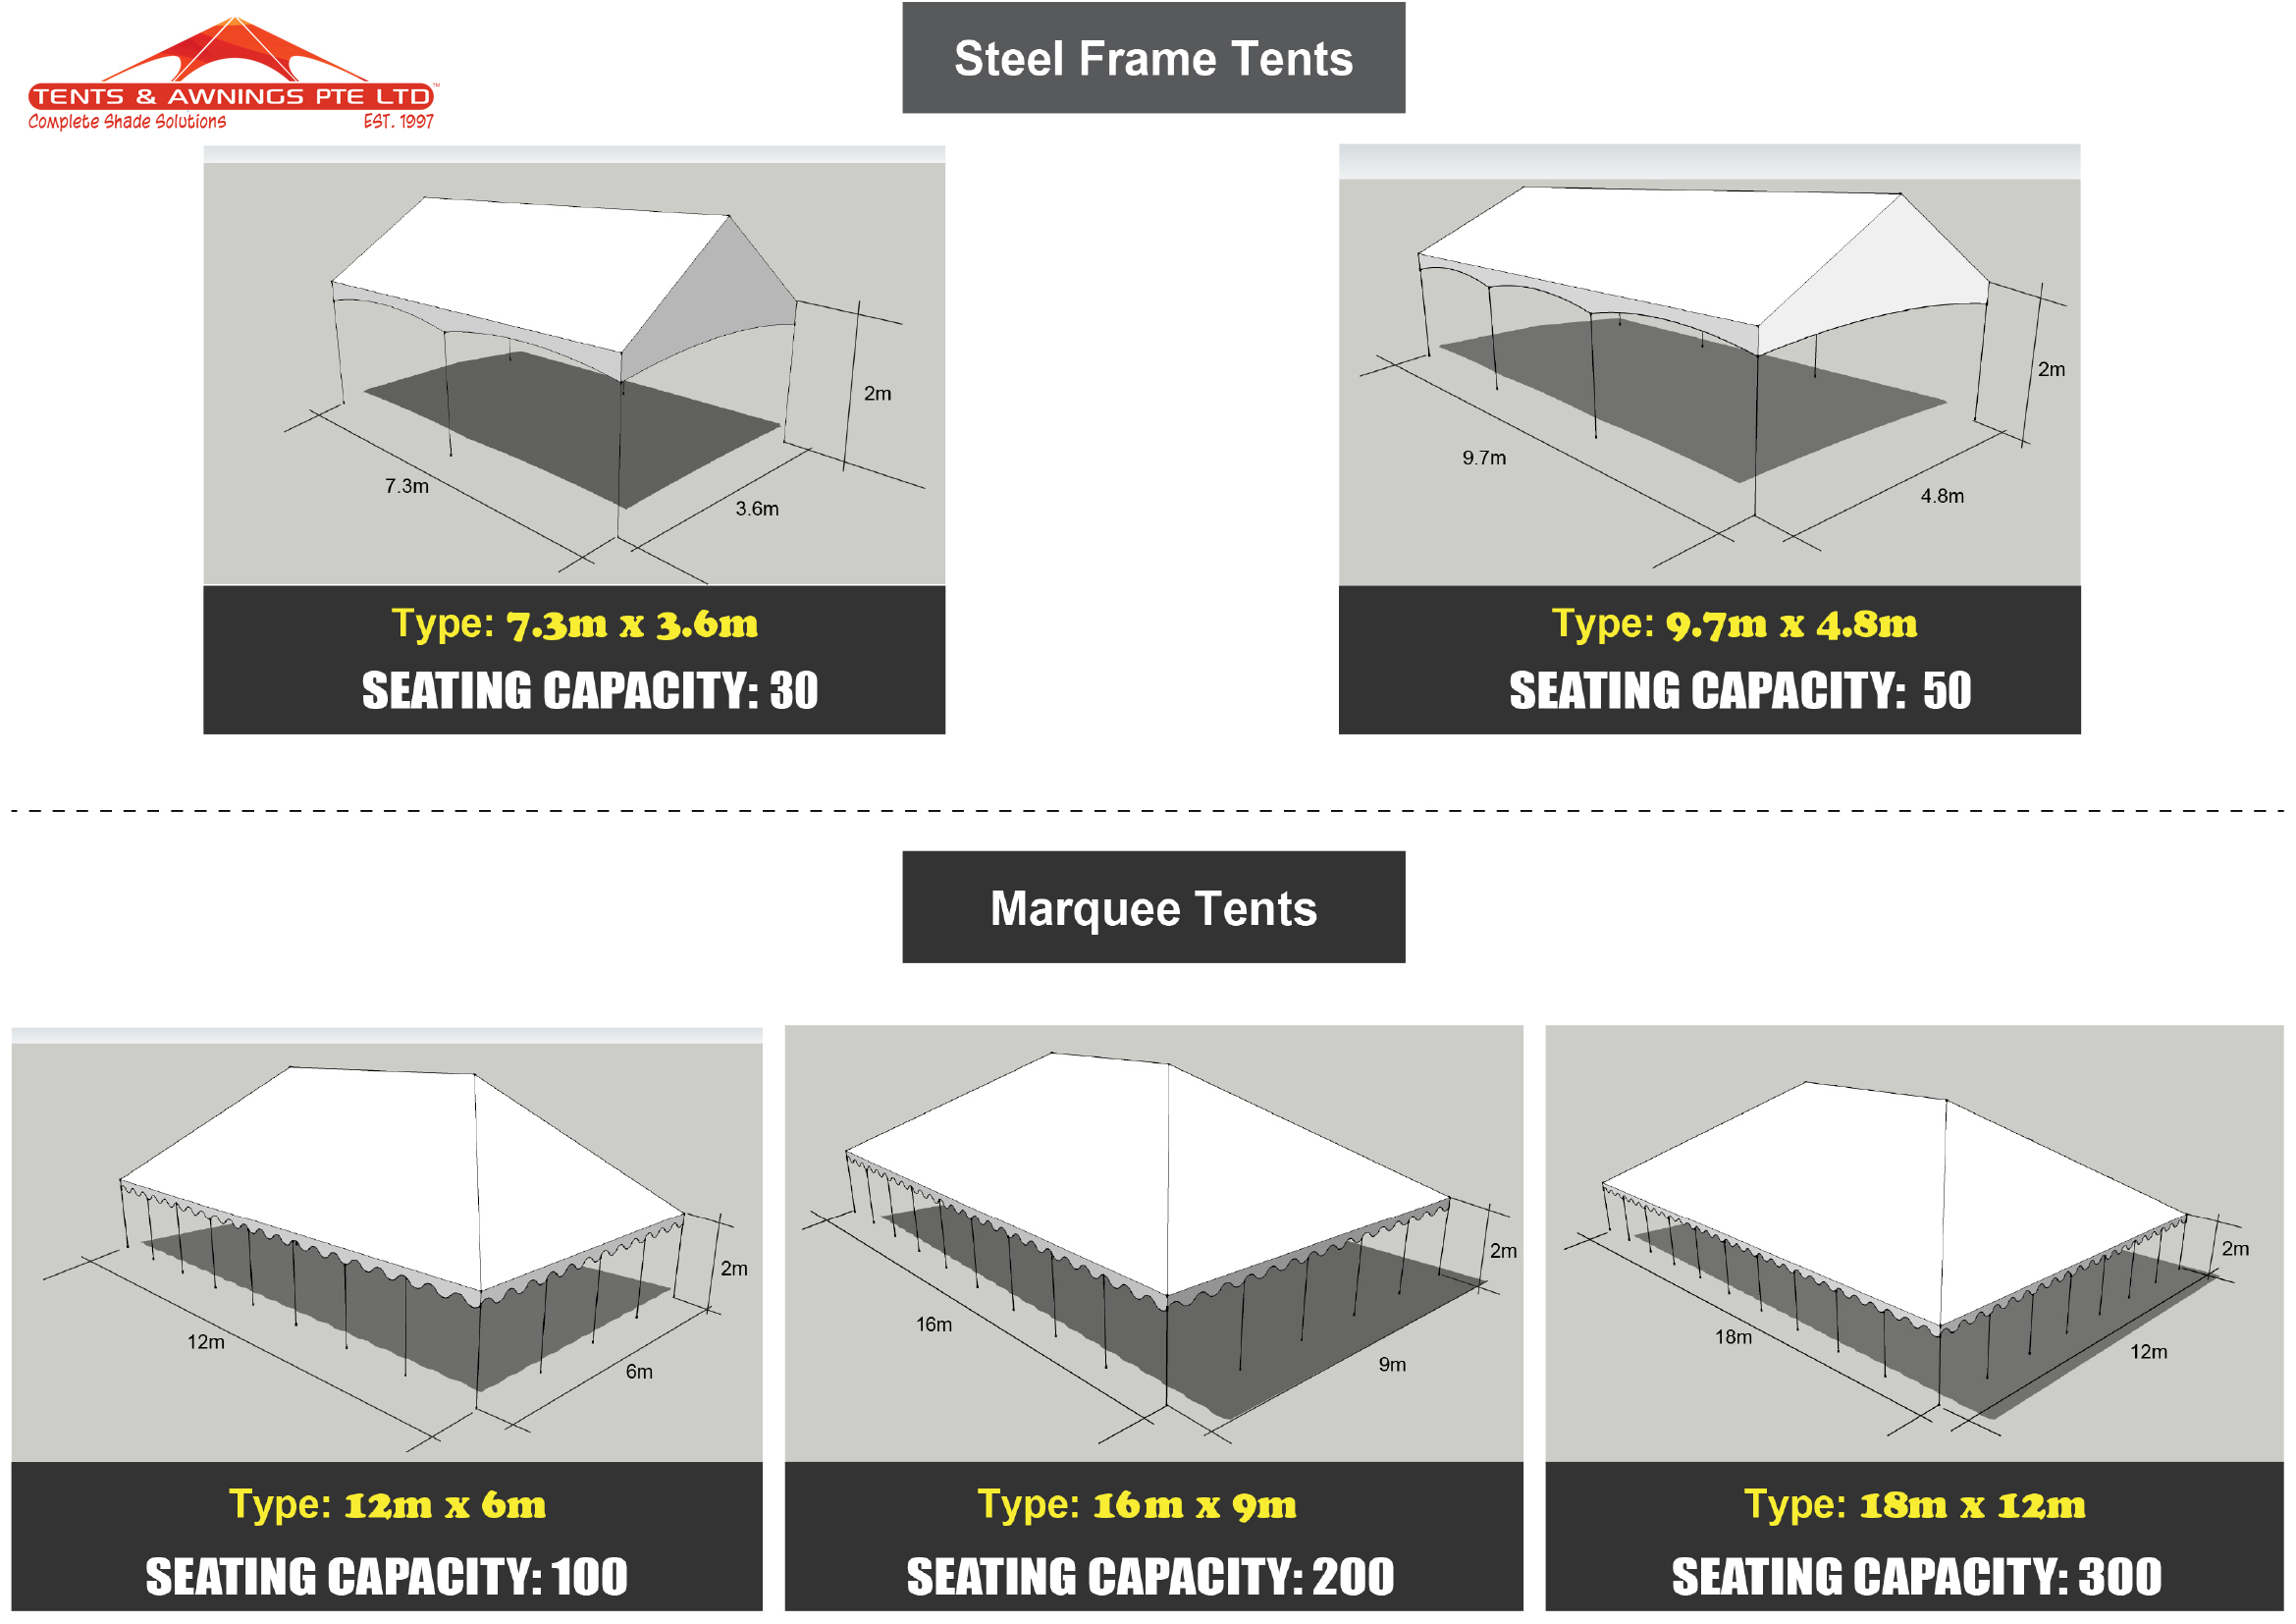 HIRE STANDARD TENTS & SIZES 2